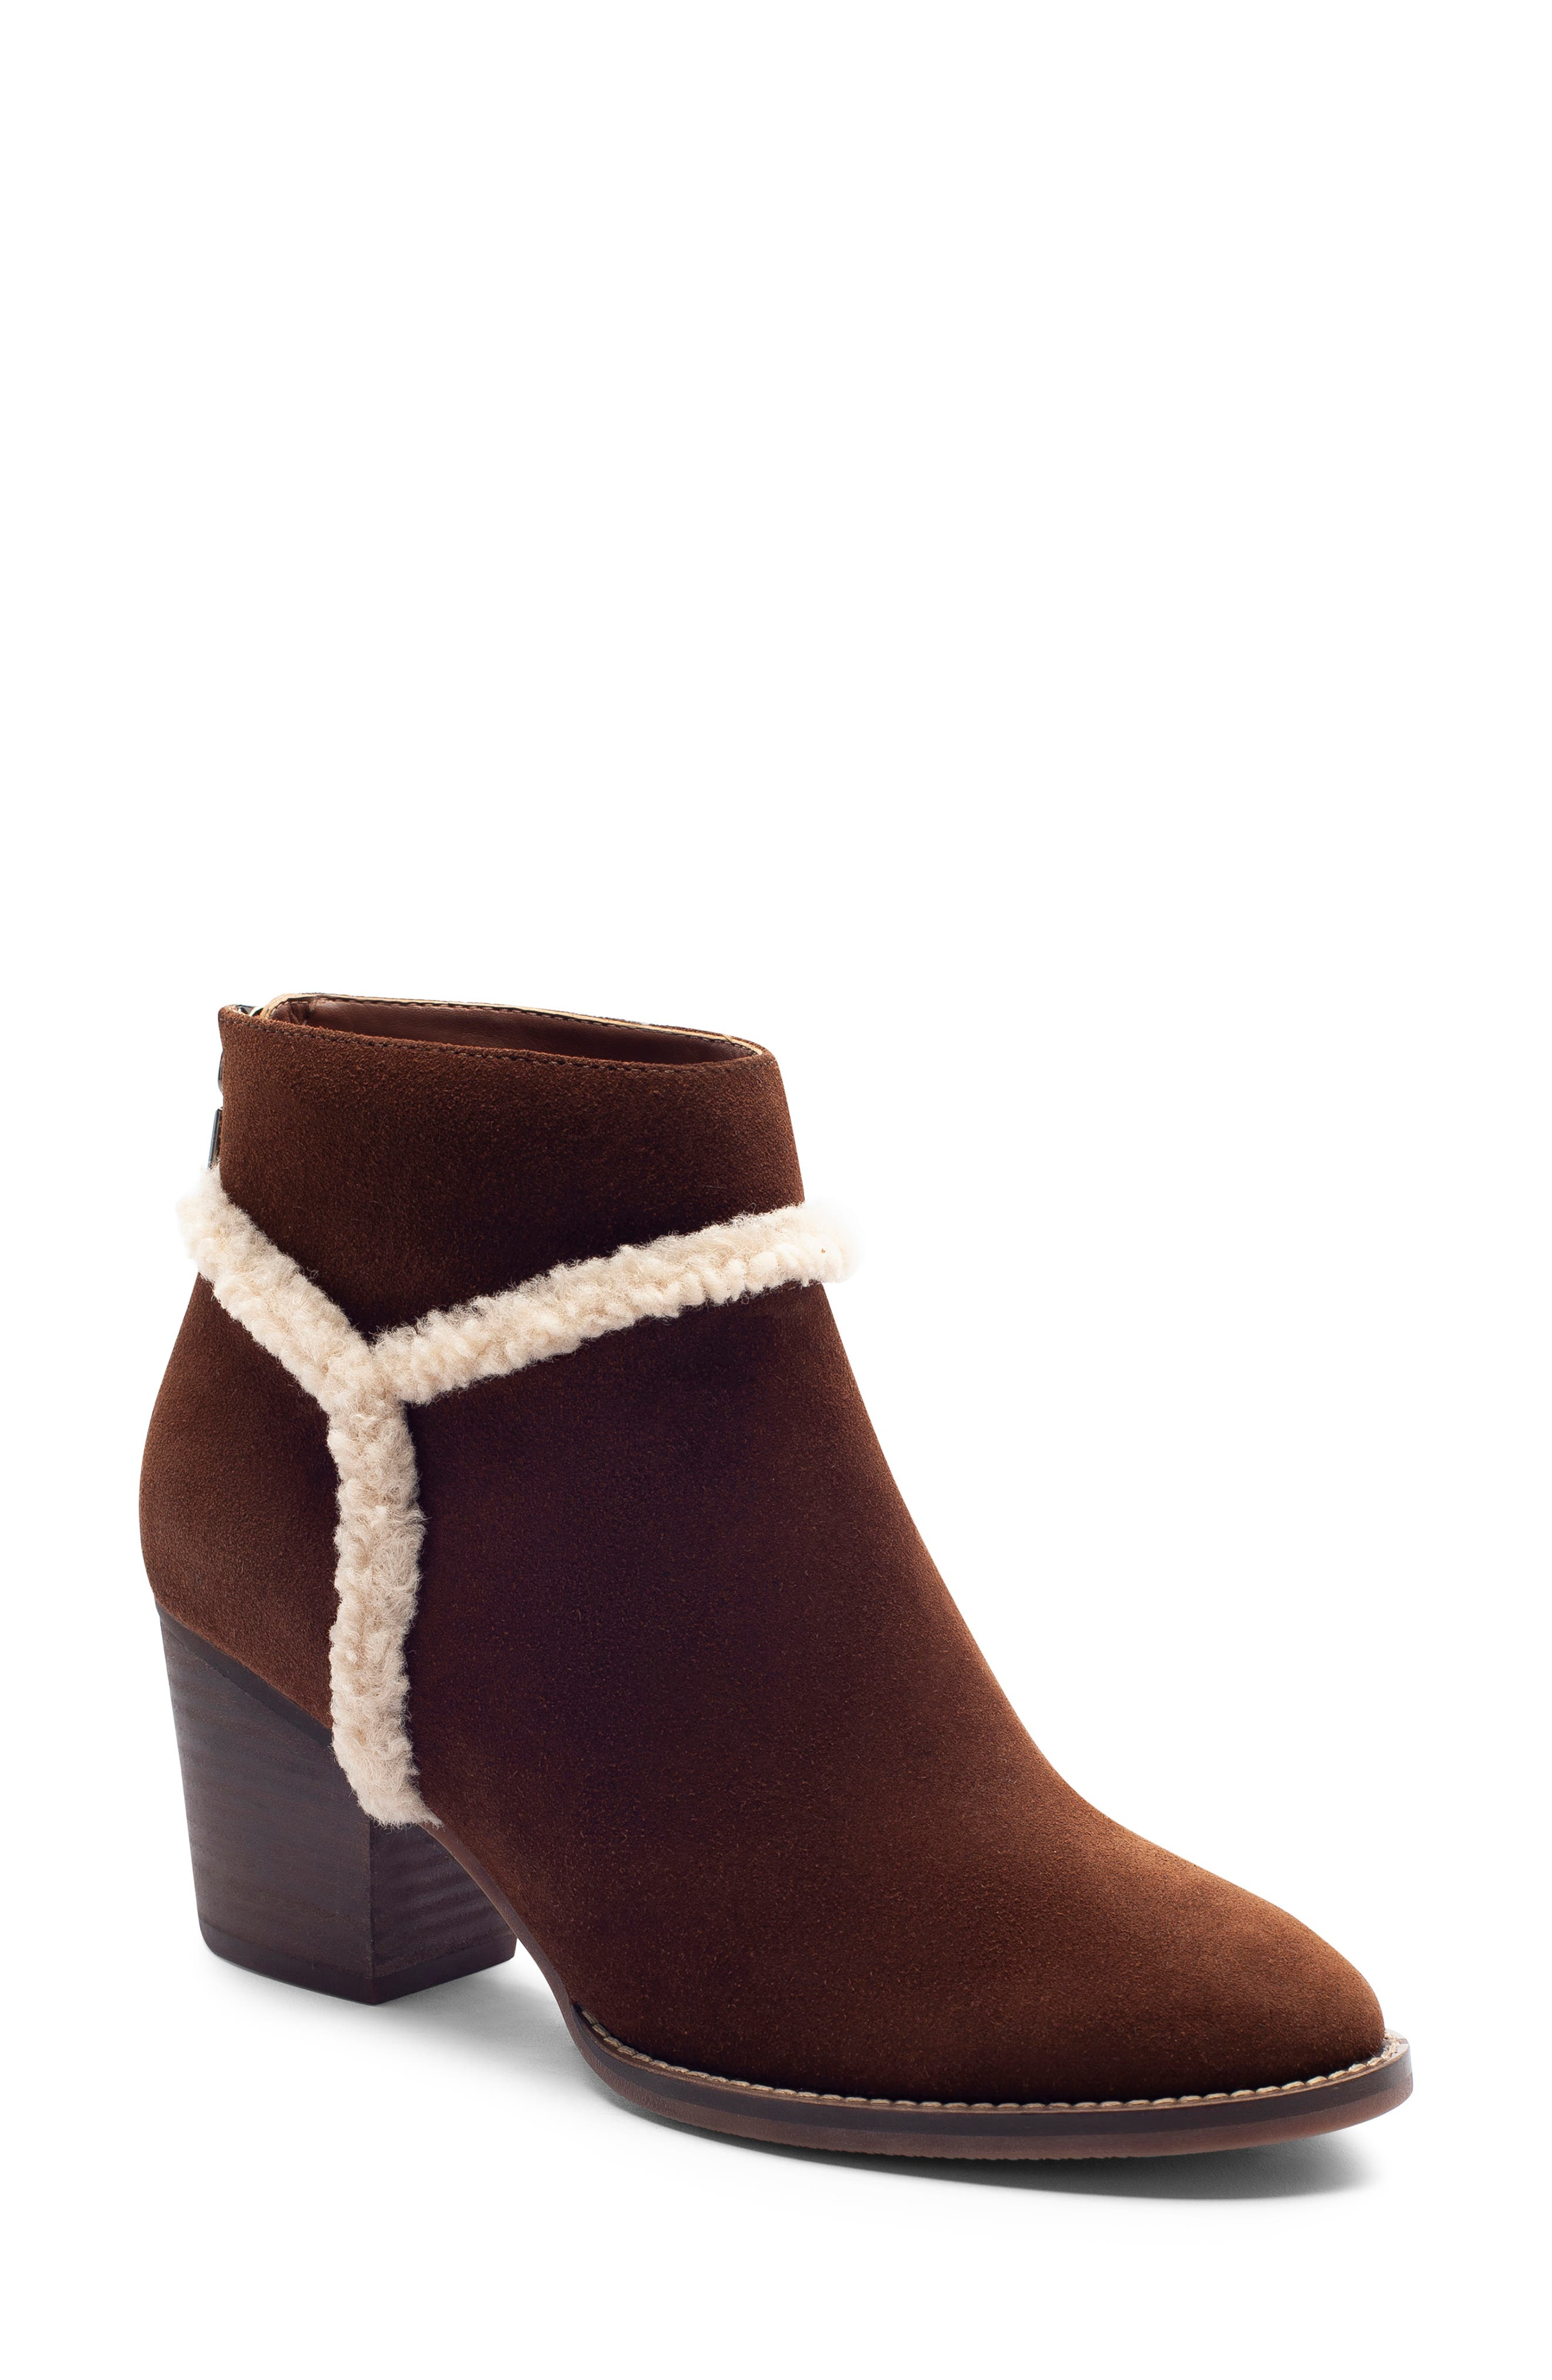 Netti Waterproof Bootie,                         Main,                         color, CHESTNUT SUEDE